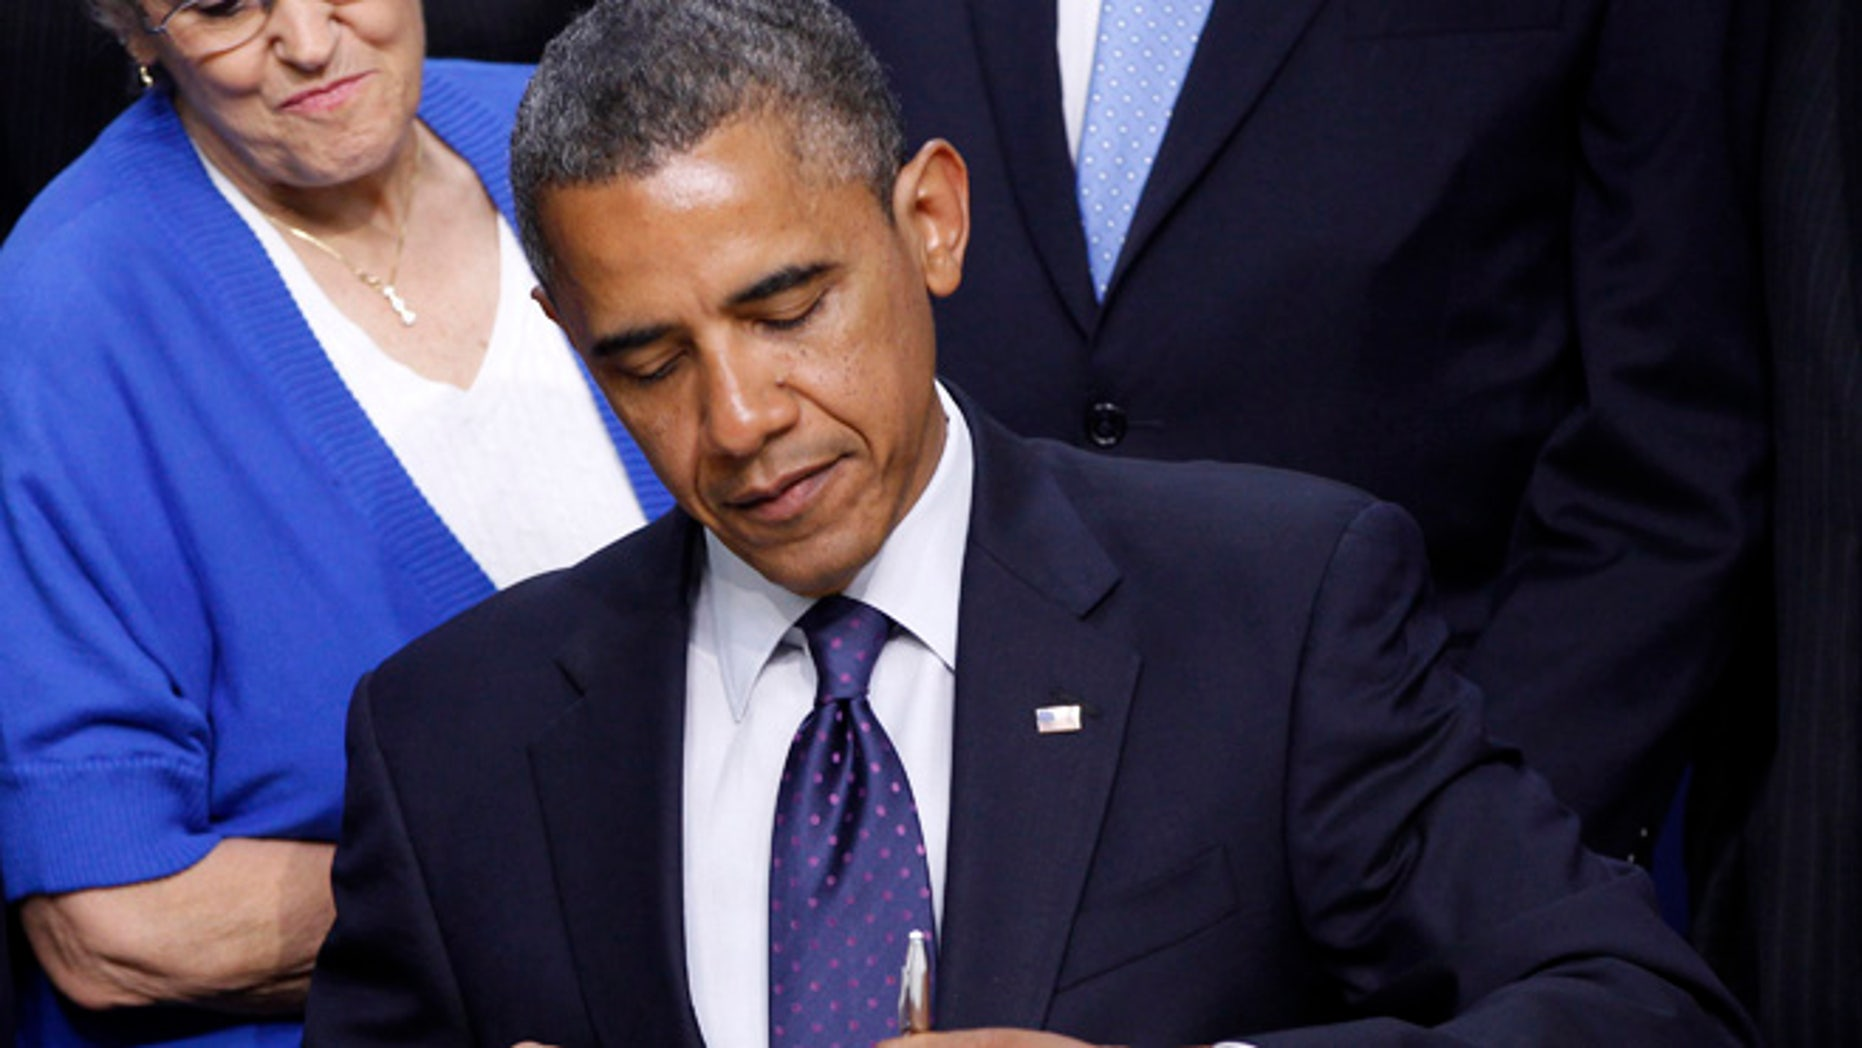 President Obama signs legislation in the Eisenhower Executive Office Building on the White House Campus in Washington.